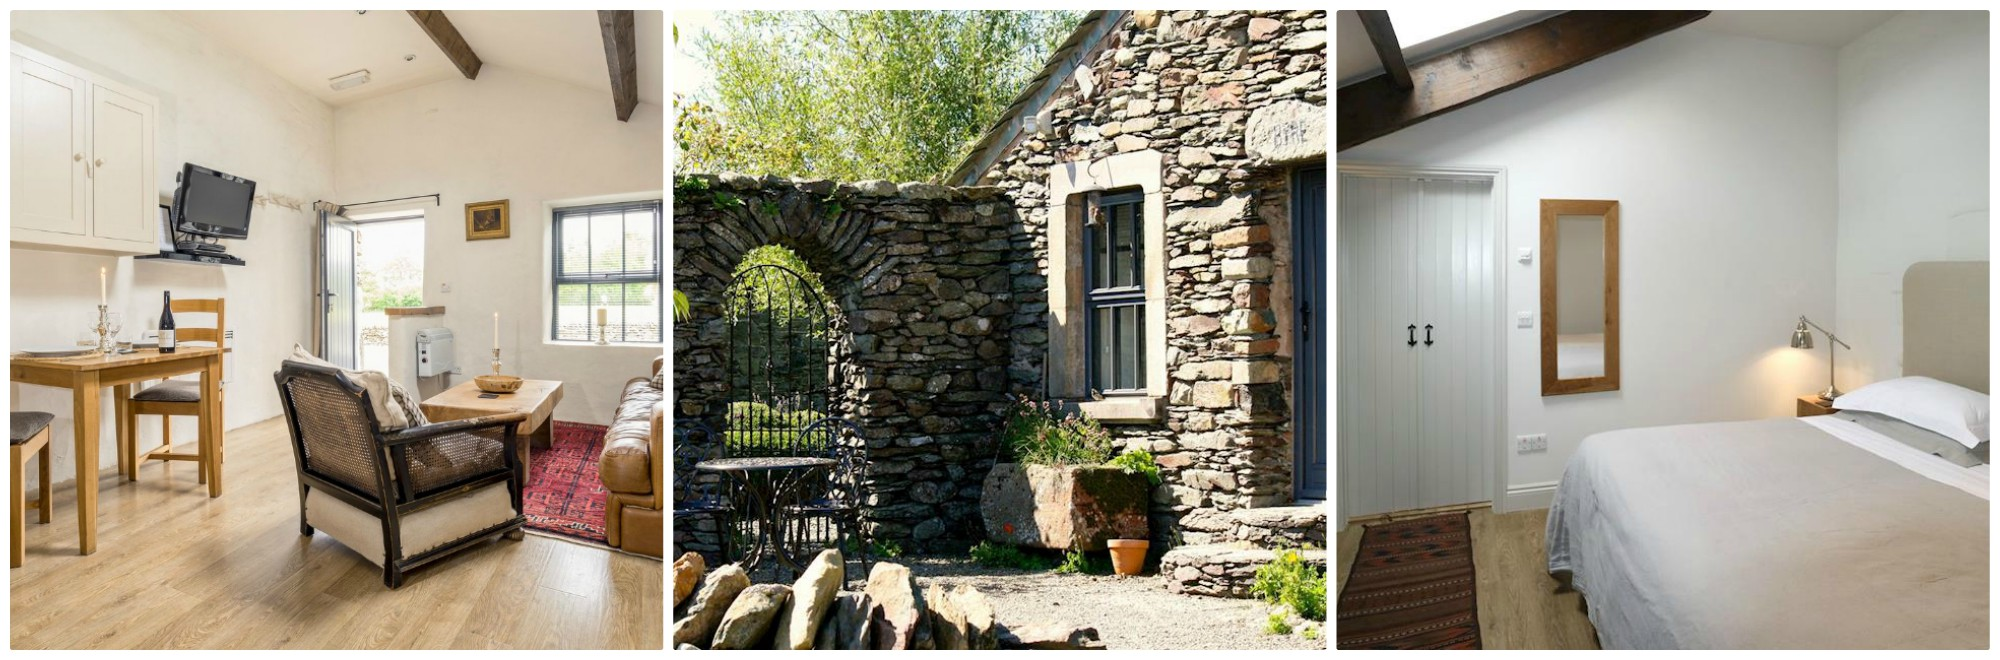 Sleeps 2 and dog friendly barn conversion just a mile from Ullswater and with glowing reviews